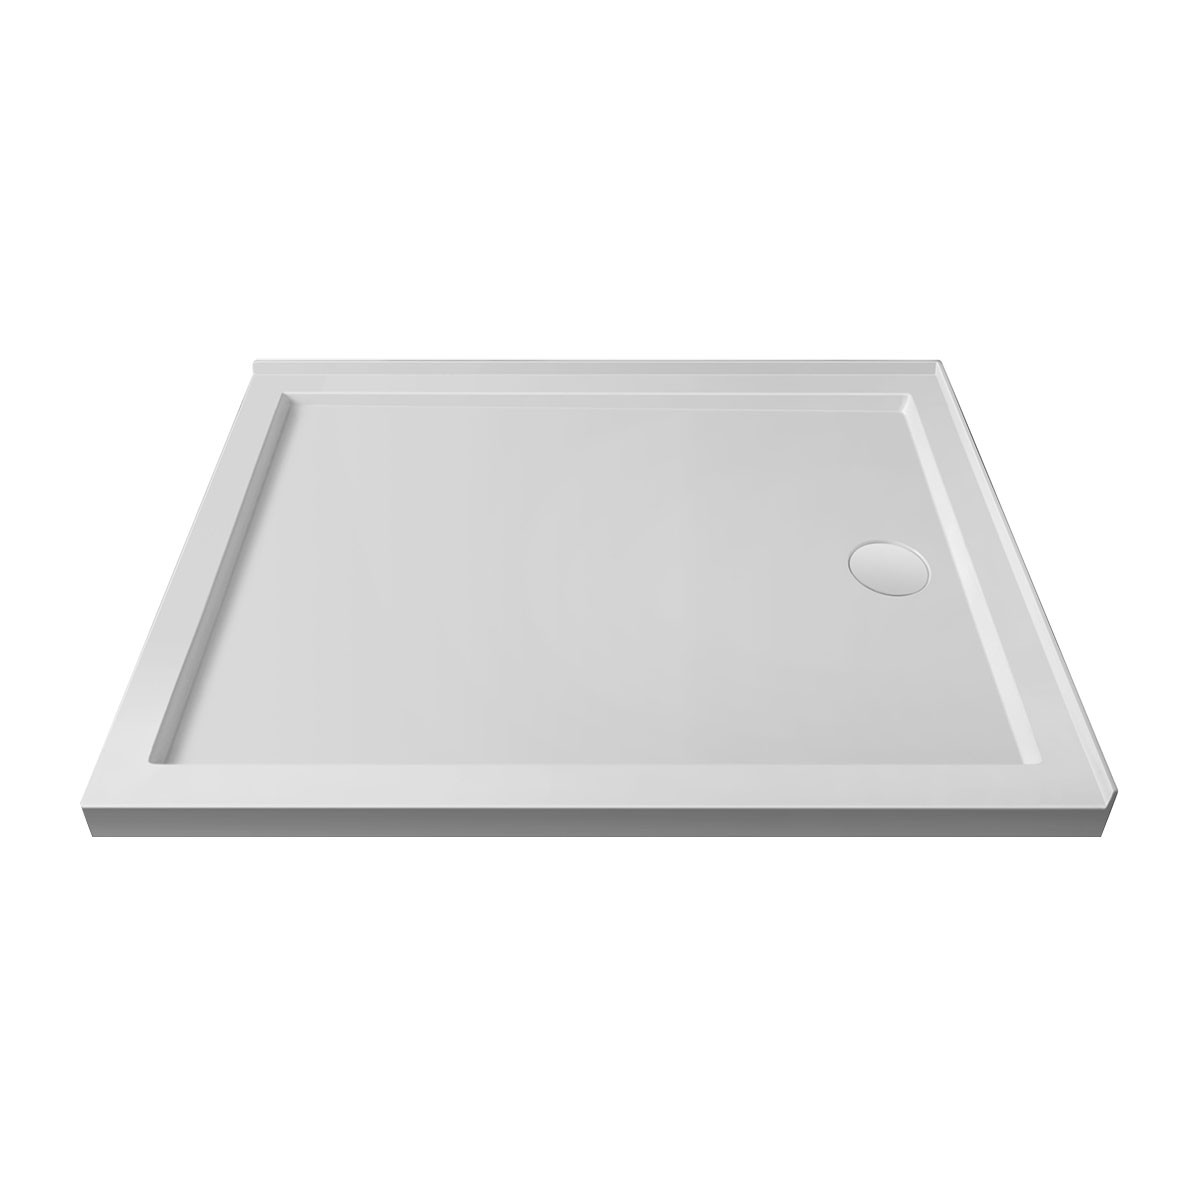 48 x 36 In Rectangular Shower Base for Right Corner Installation (DK-STA-18003)